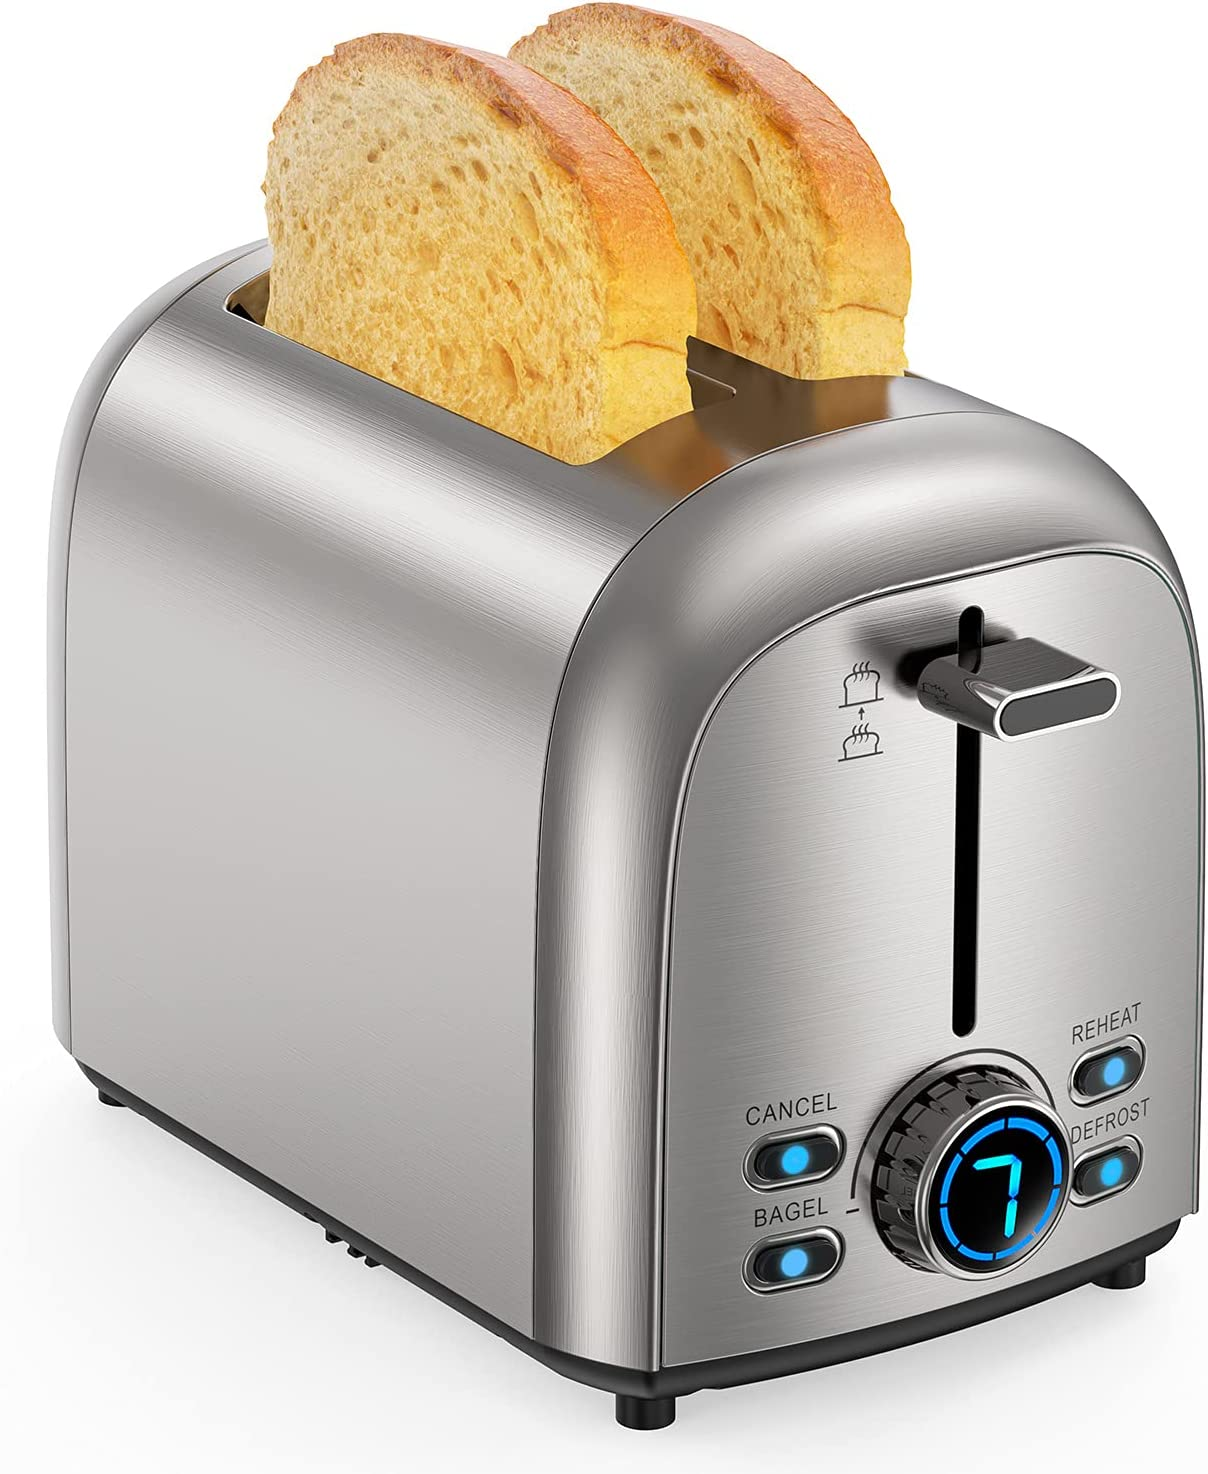 Toaster 2 Slice , Upgraded Stainless Steel Toaster, Extra Wide Slot Bread Toaster with Bagel Defrost Reheat Cancel Function , 7 Browning Settings, LED Display, 850W 120V